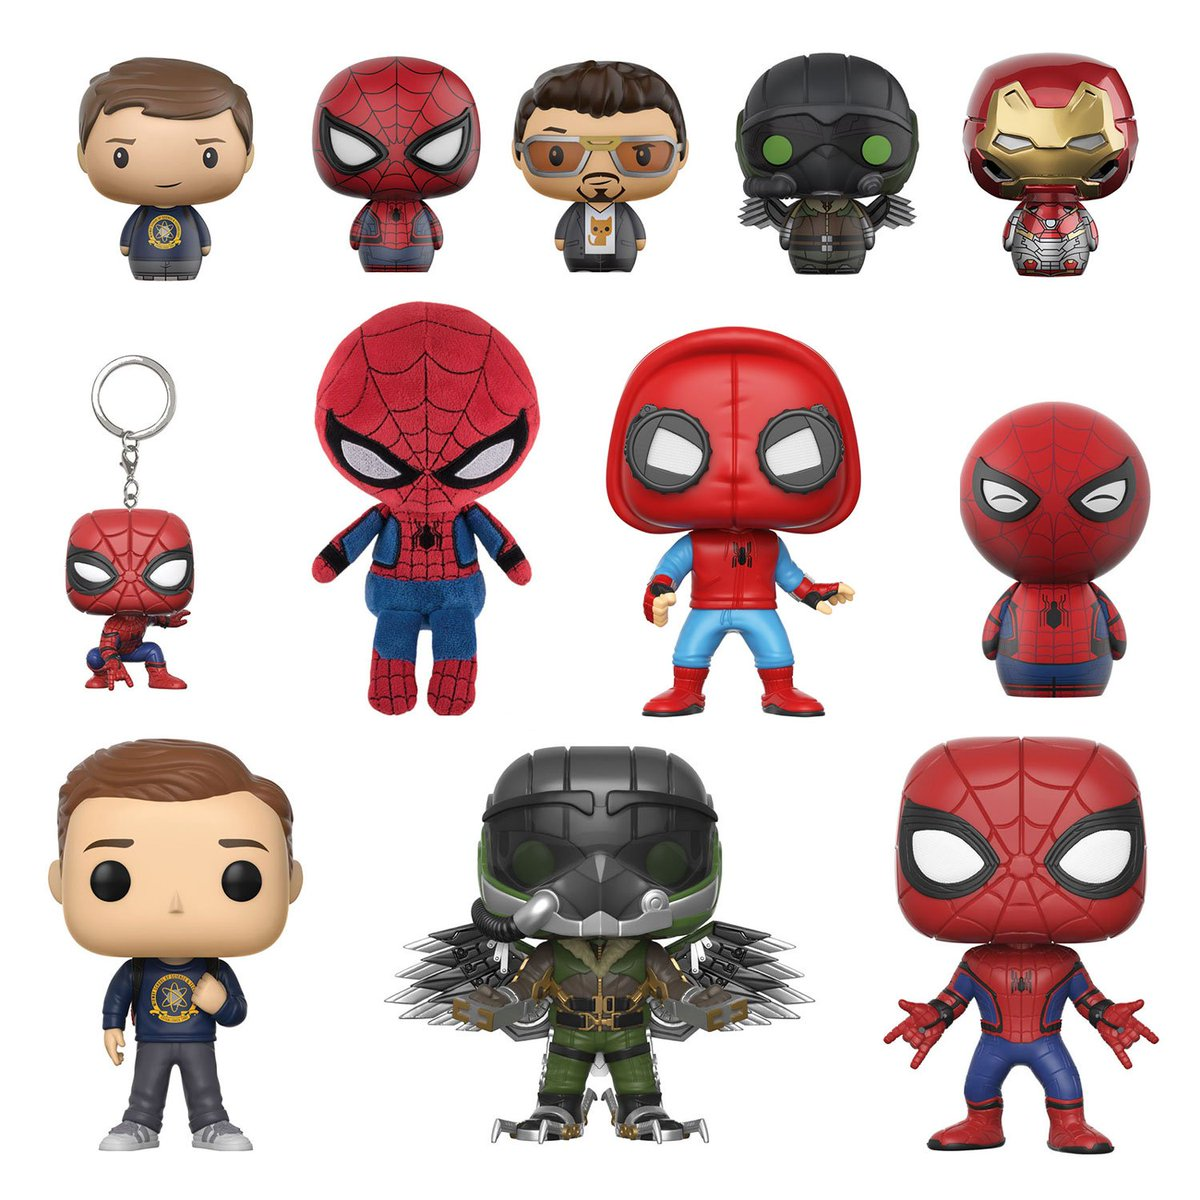 #Spiderman #Homecoming #Tony Stark #Peter Parker #spiderman #funko #pop #toy fair 2017, #Vulture